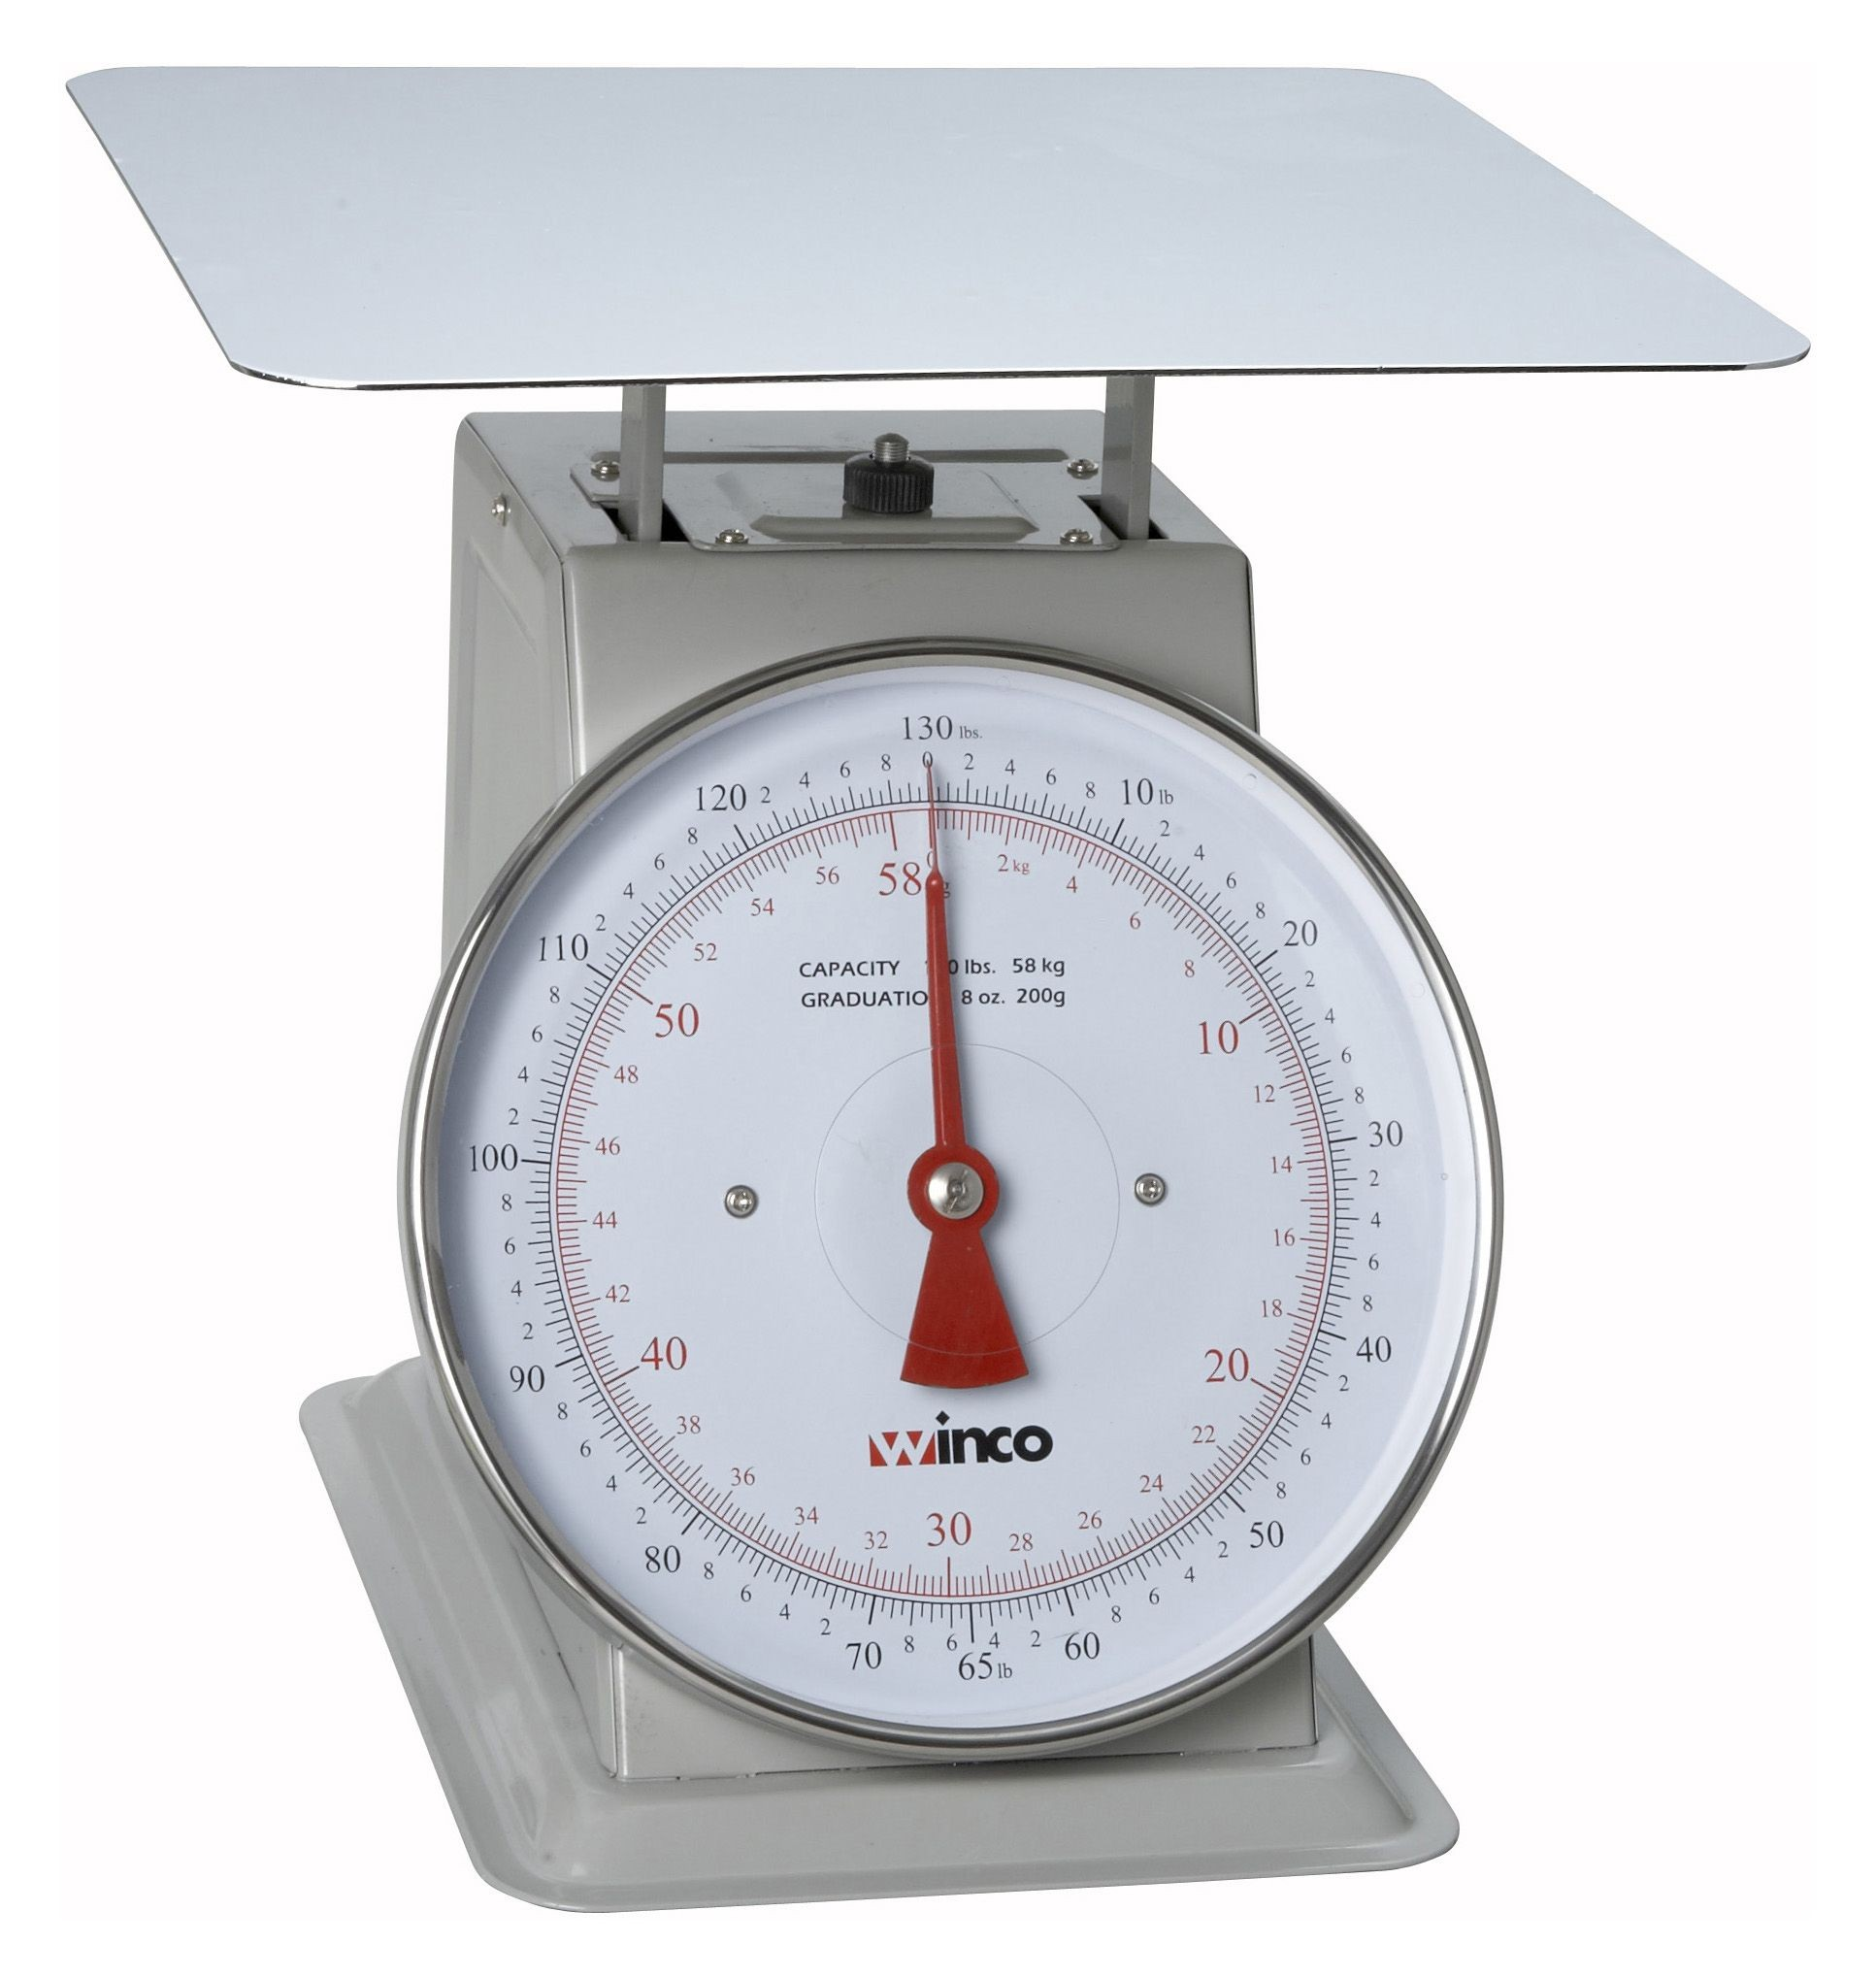 Winco scal-9130 Receiving Scale 130 Lb.